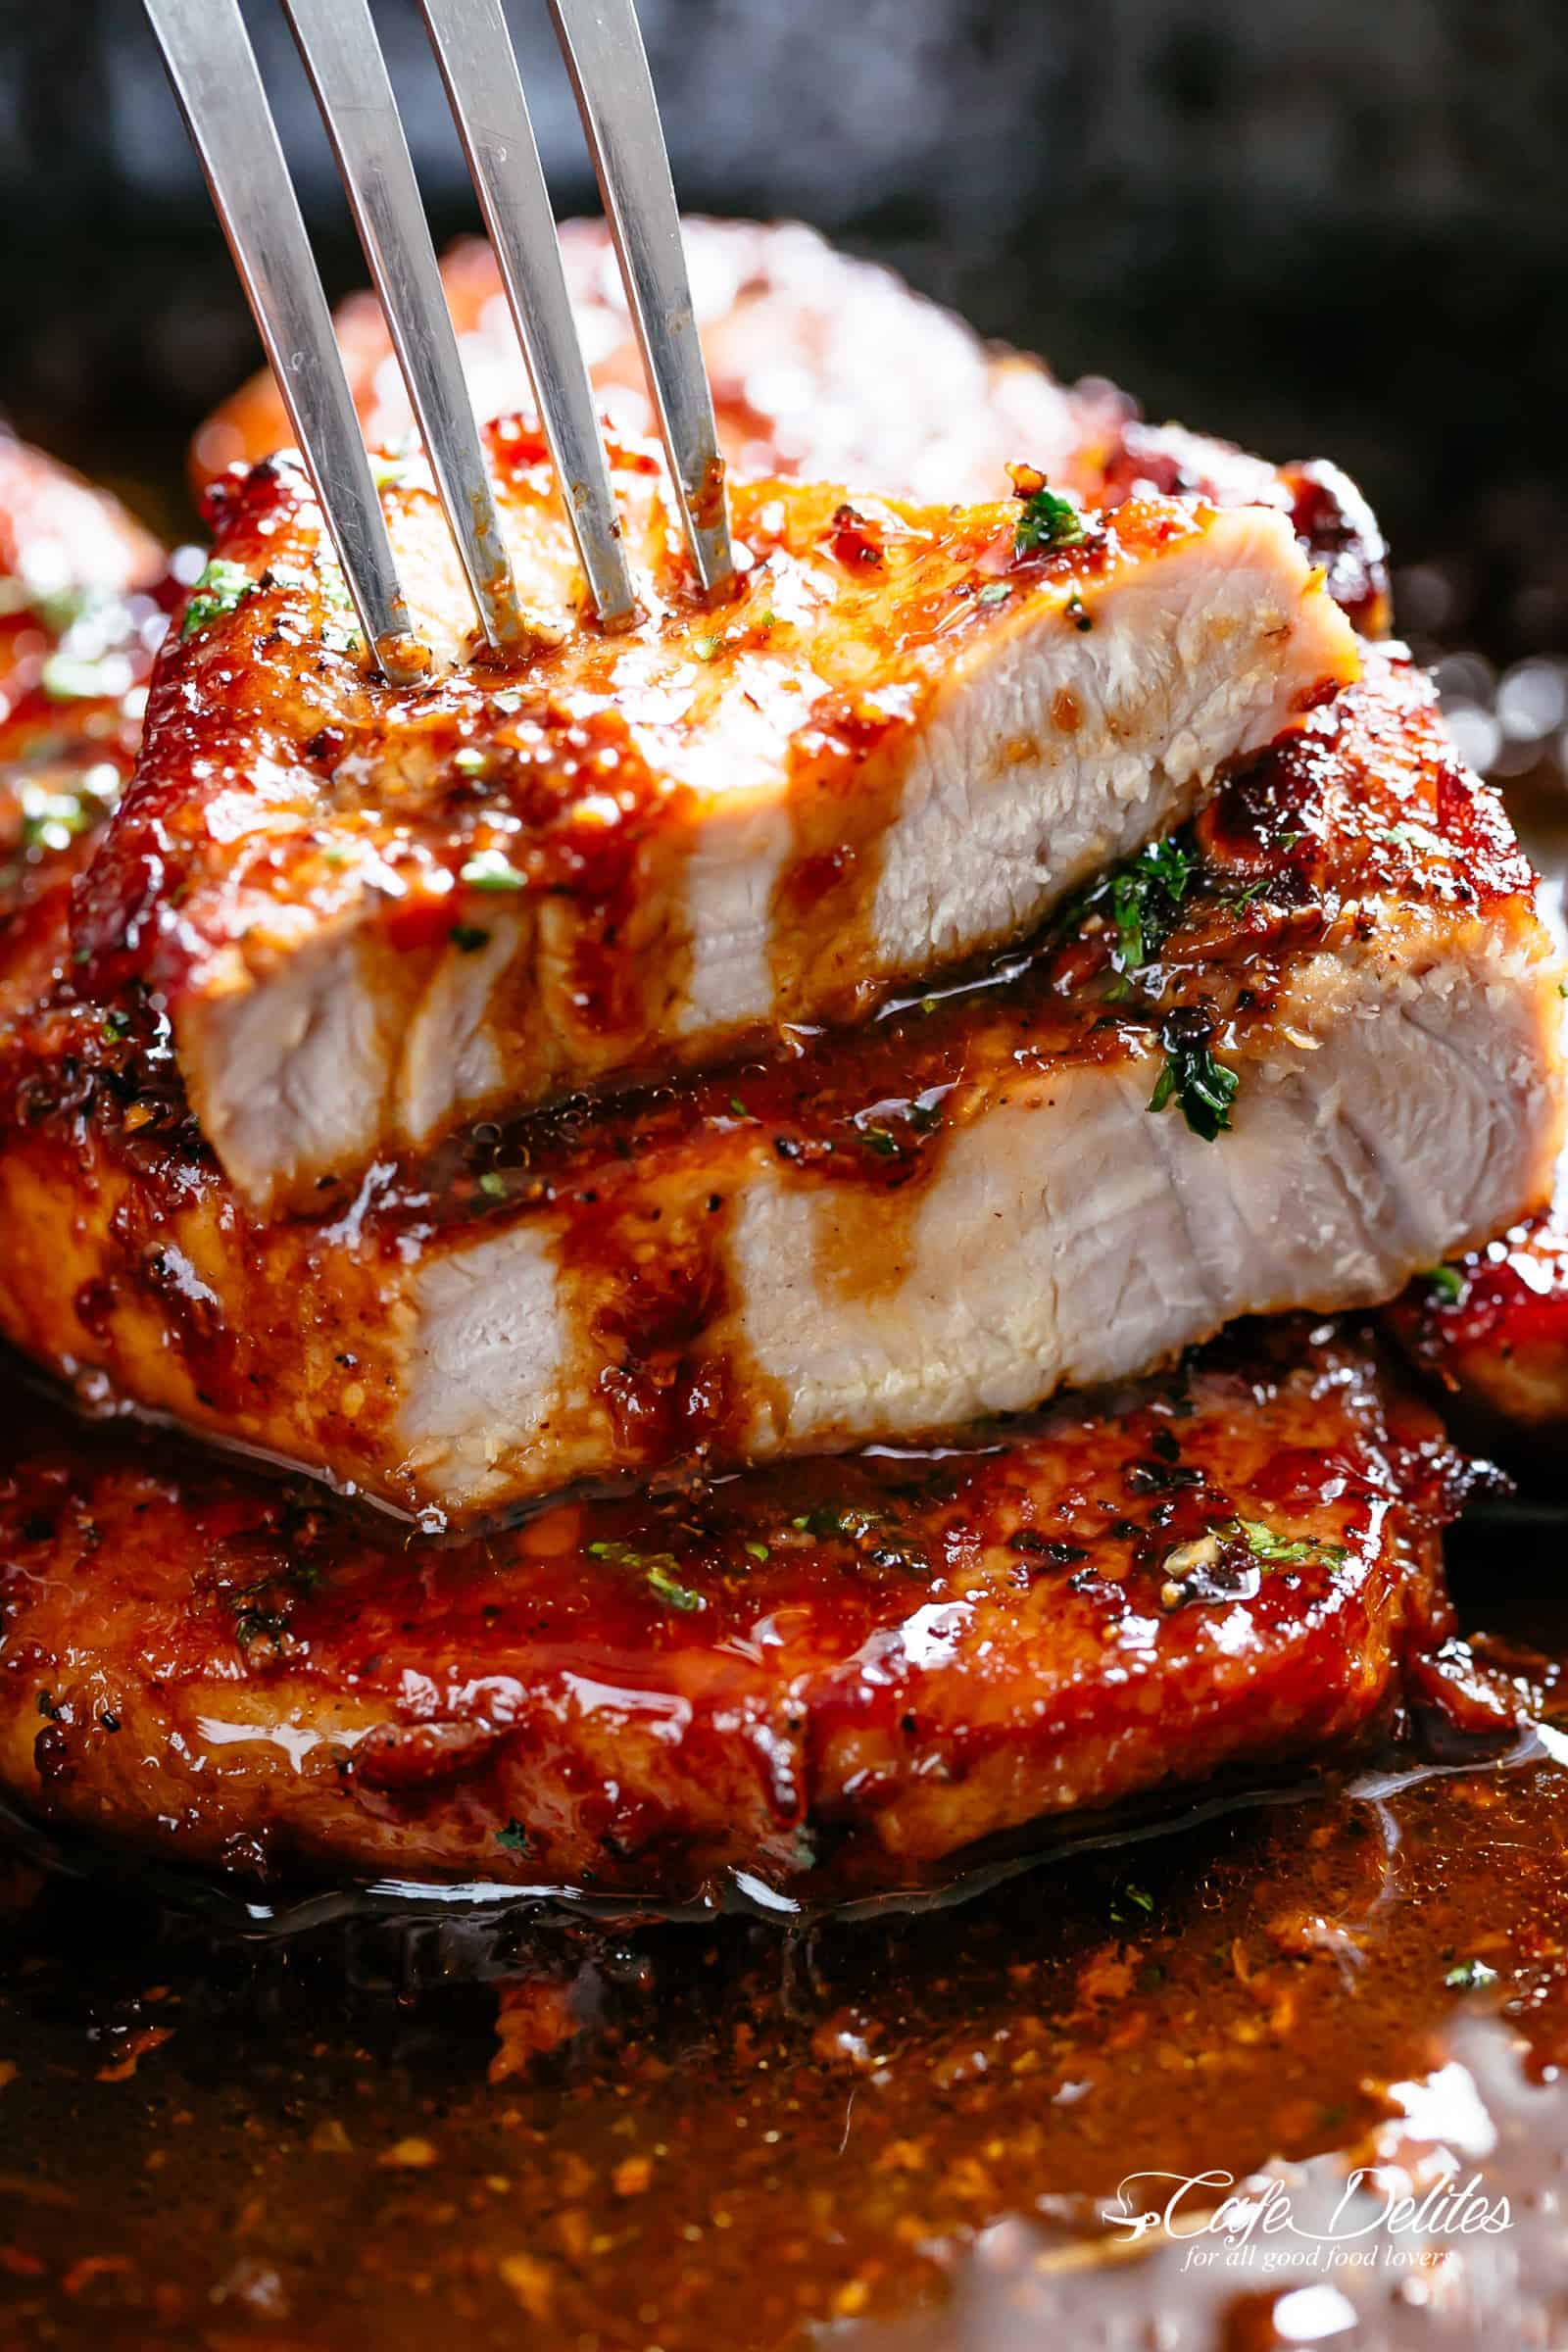 Easy Honey Garlic Pork Chops made simple, with the most amazing and addictive 4-ingredient honey garlic sauce that is so good you'll want it on everything! | cafedelites.com